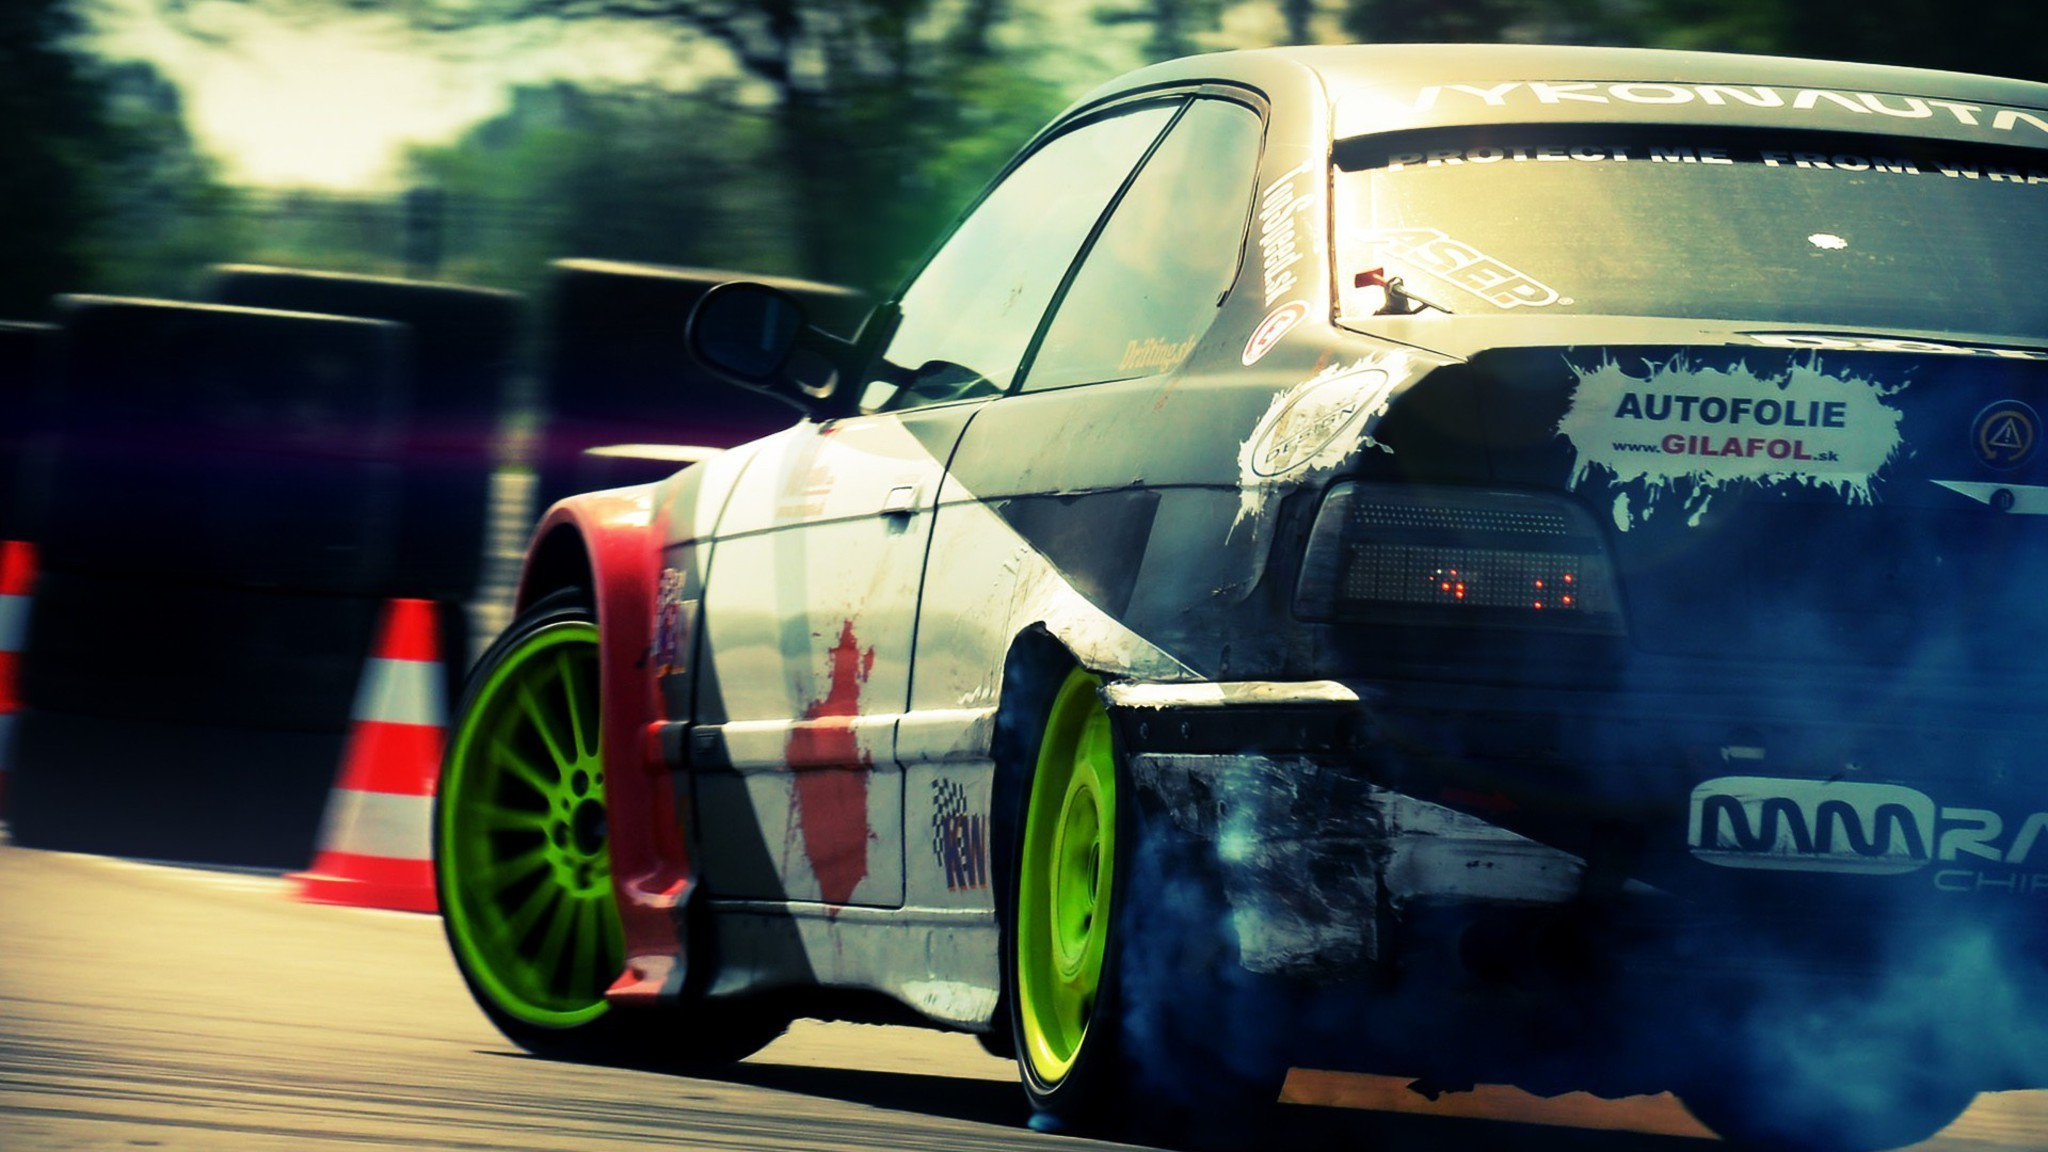 Bmw e36 m3 tv shows drifting cars wallpaper | AllWallpaper ...